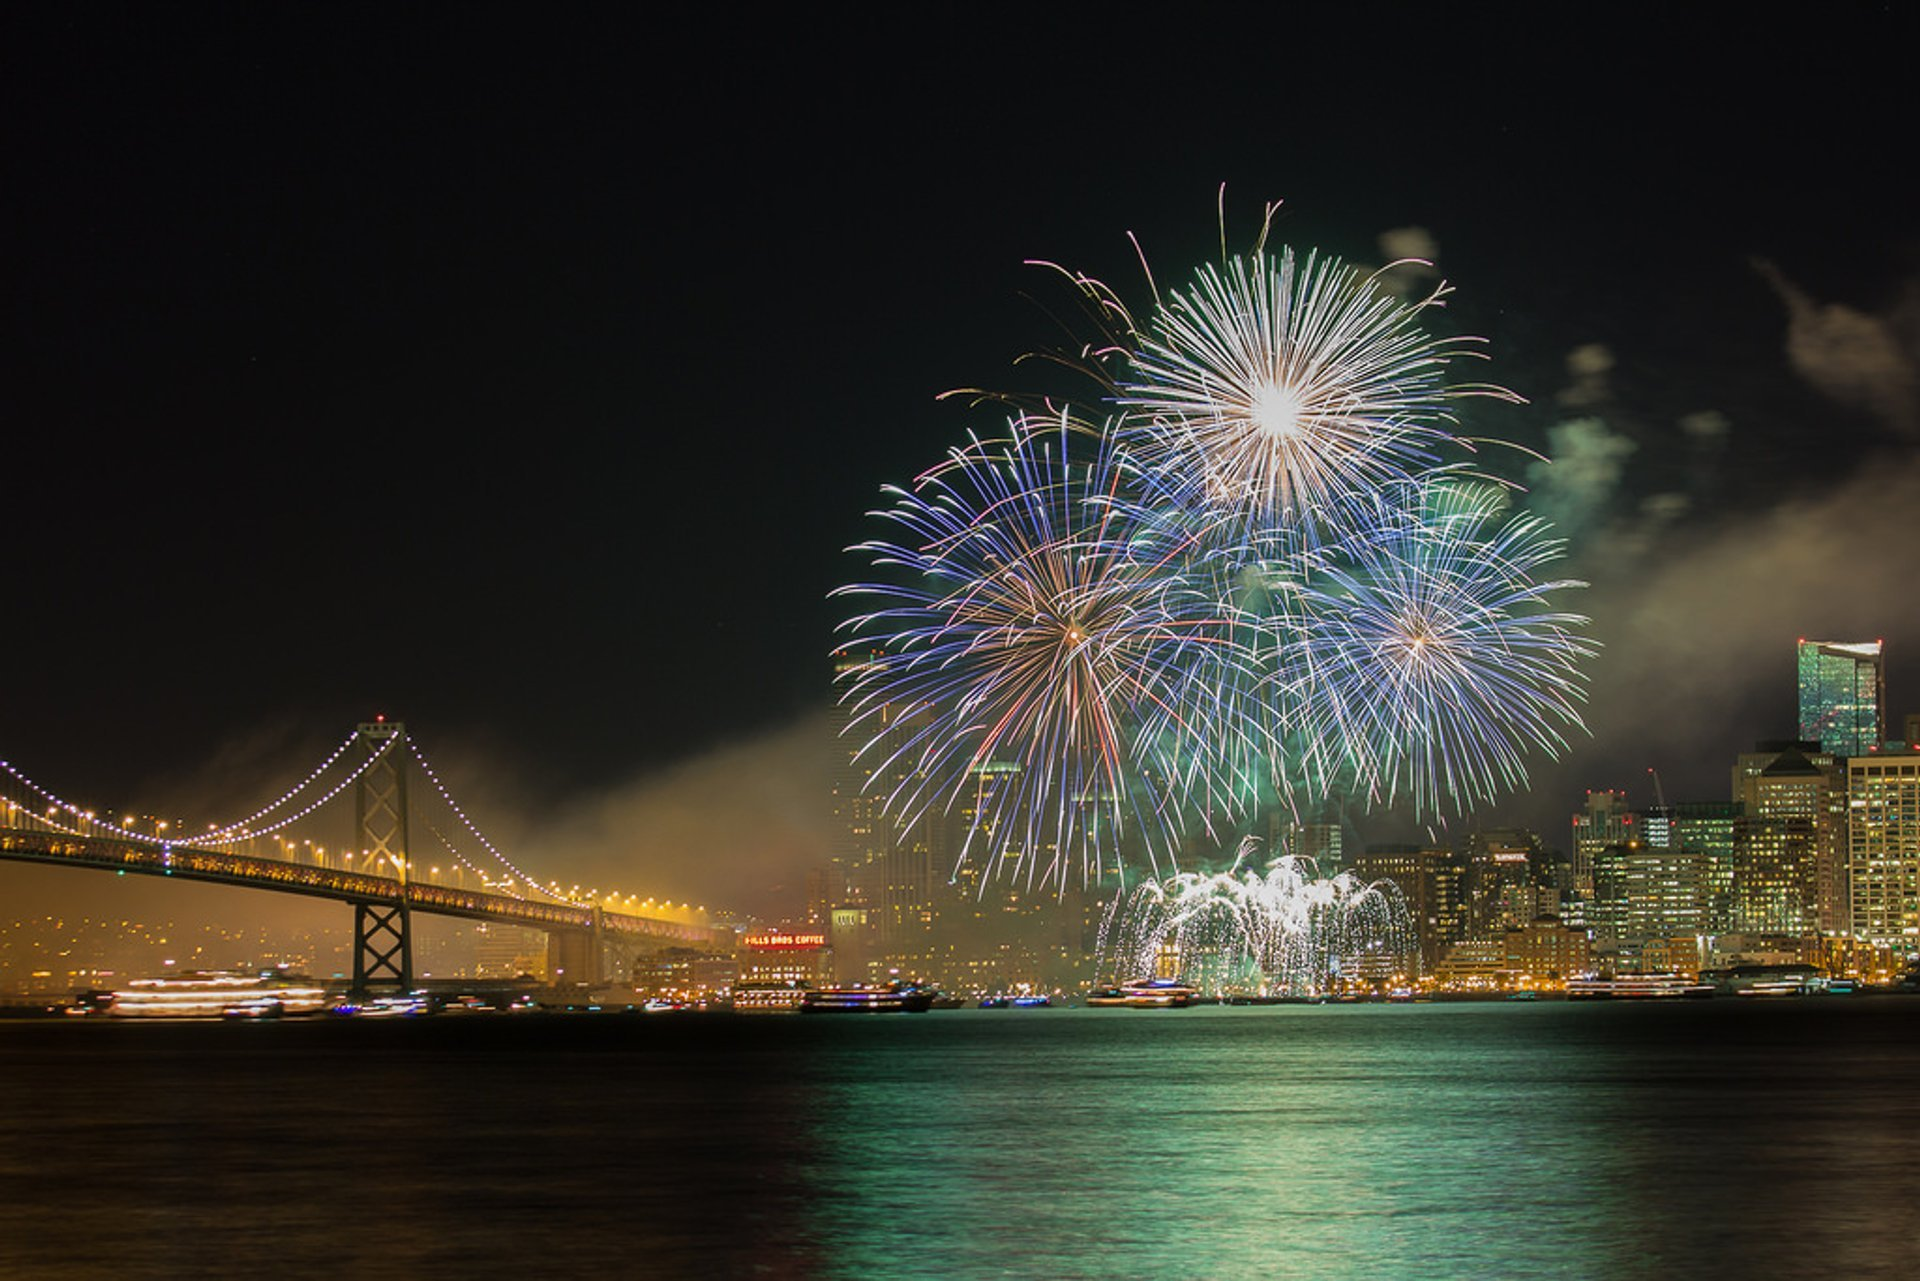 New Year's Eve Fireworks in San Francisco 2020 - Best Time